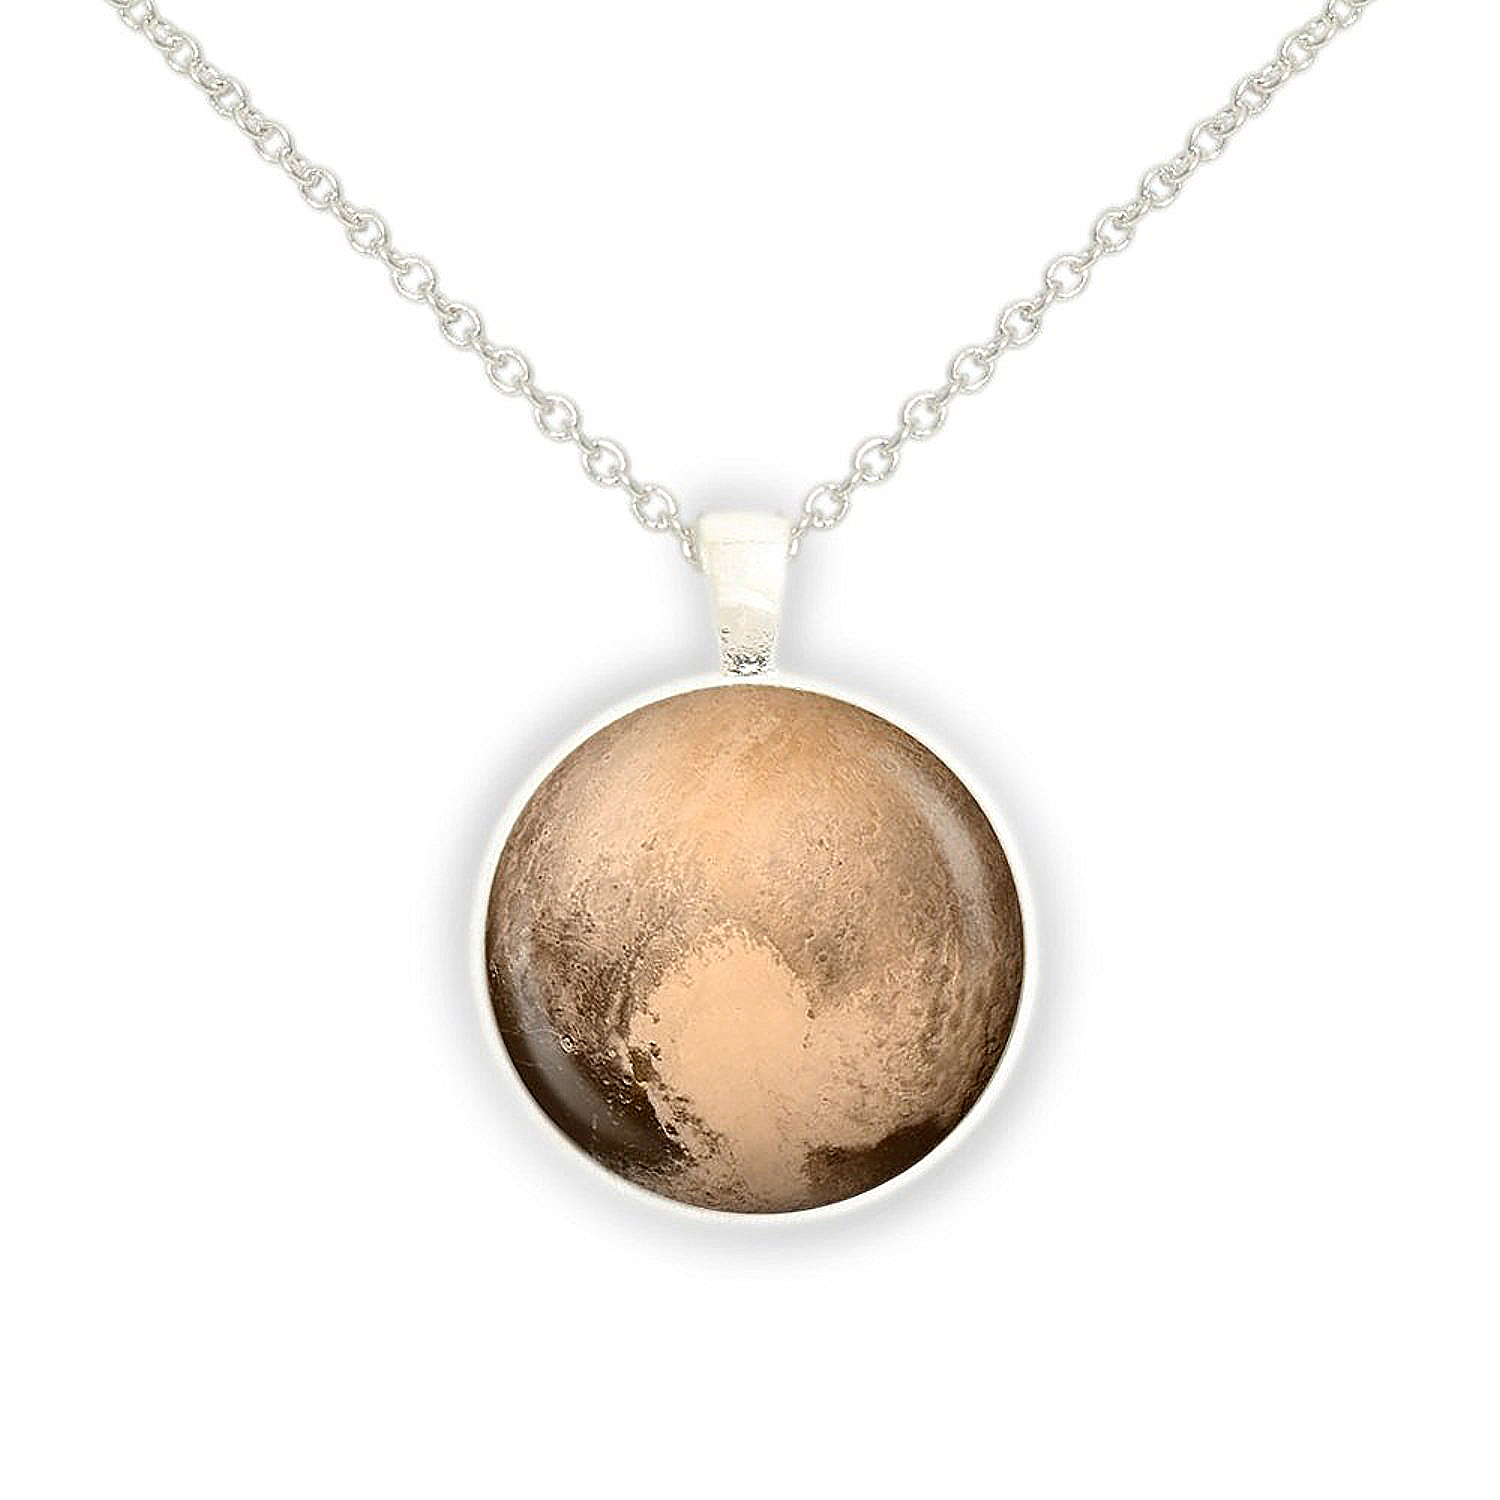 Pluto's 'Heart' Necklace